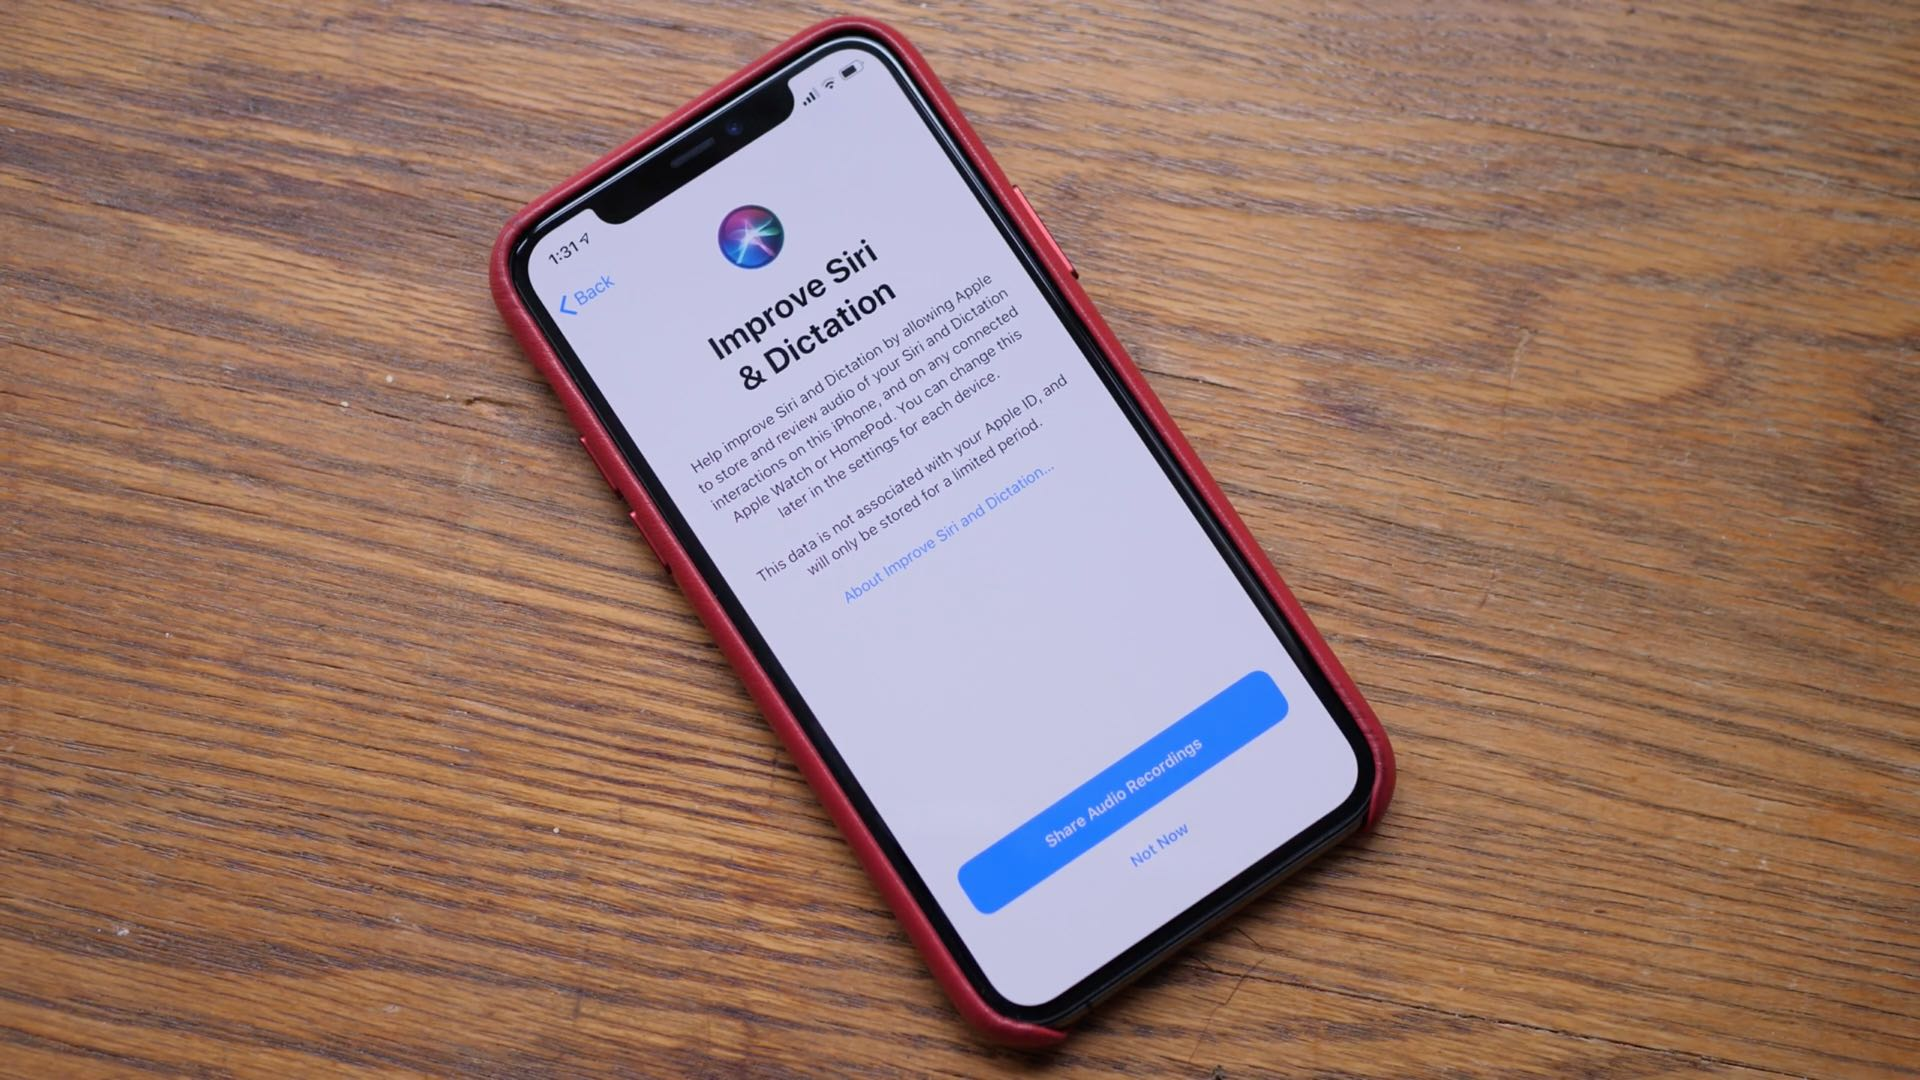 iOS 13.2 features improved Siri and dictation